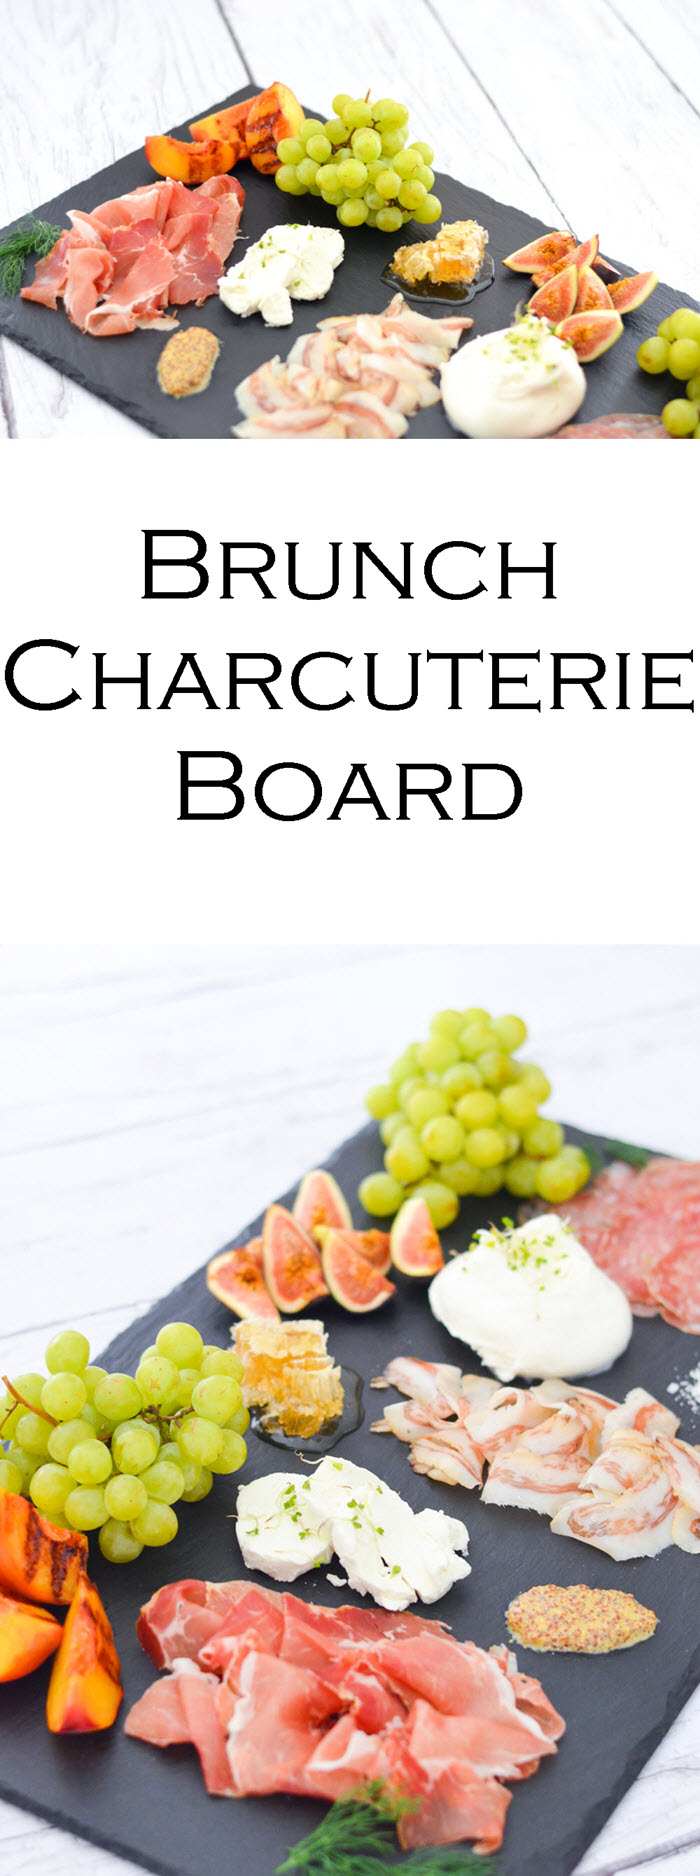 Brunch Charcuterie Board for Breakfast - Shopping List + layout w. three cured meats, 2 cheese, toppings, and fruits to serve!